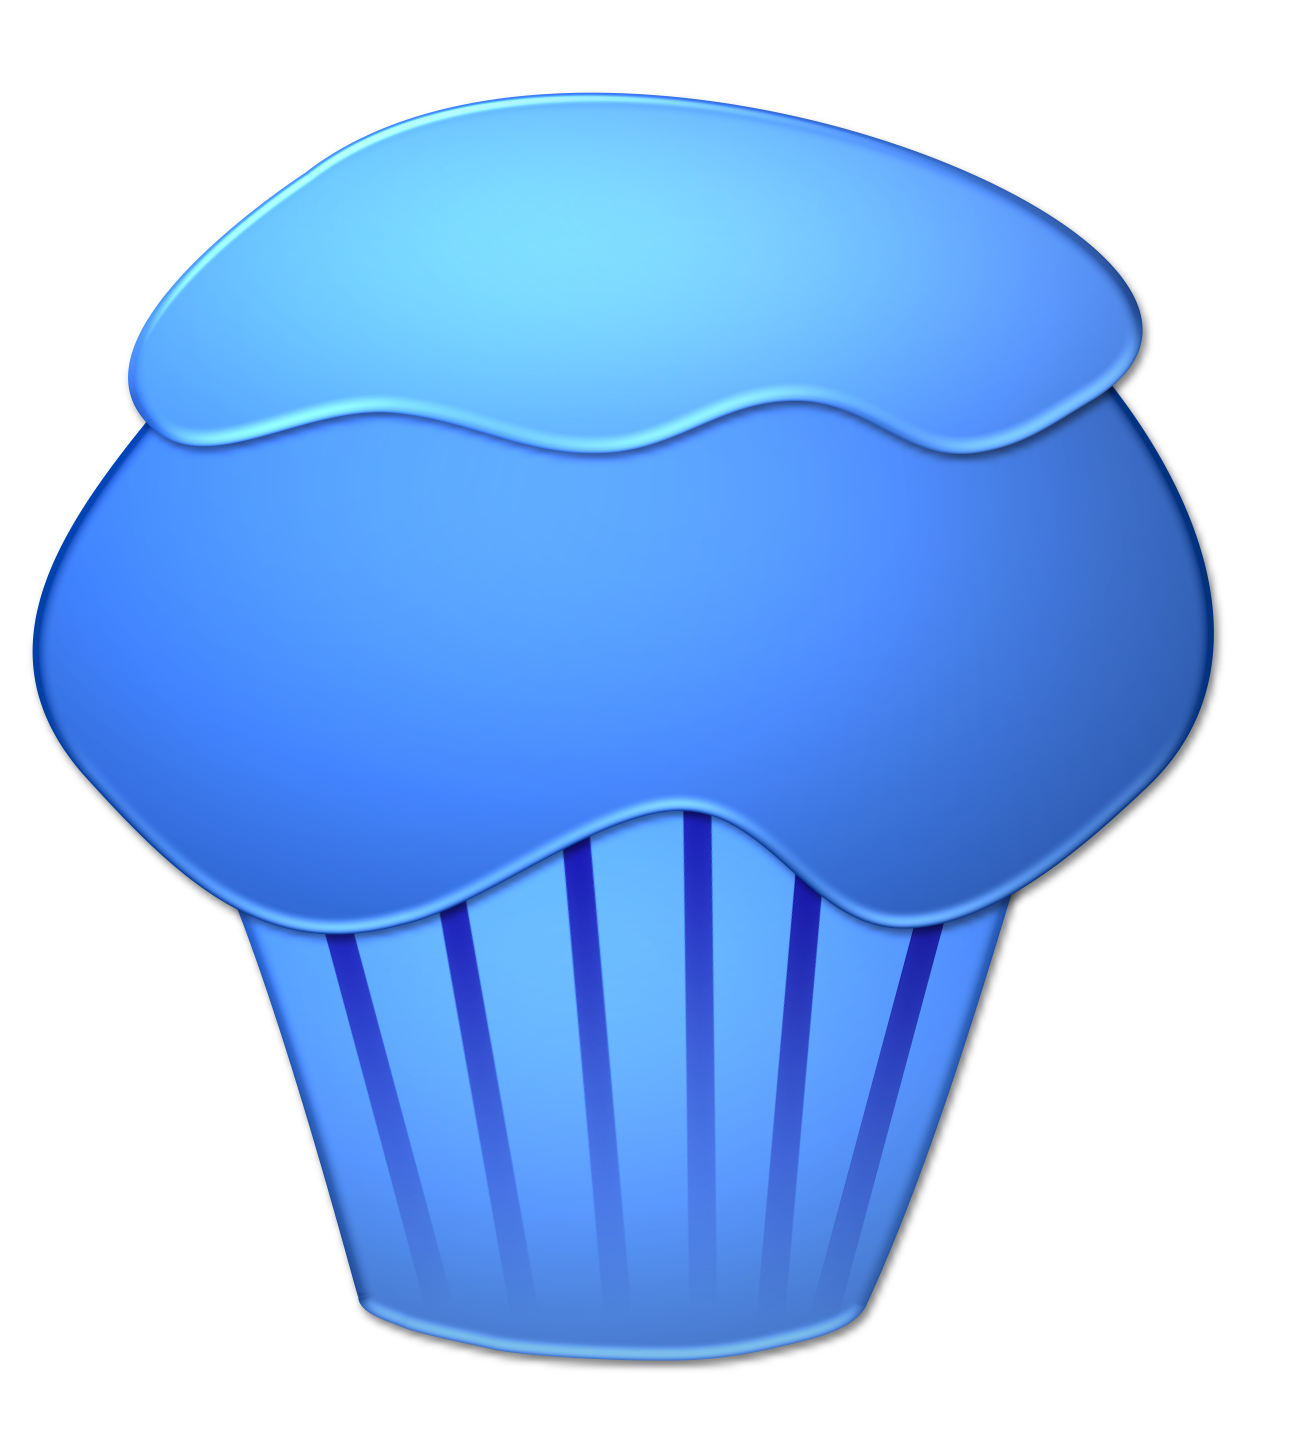 Blueberry Muffin clipart transparent Blueberry Clipart cupcake Cupcake blueberry